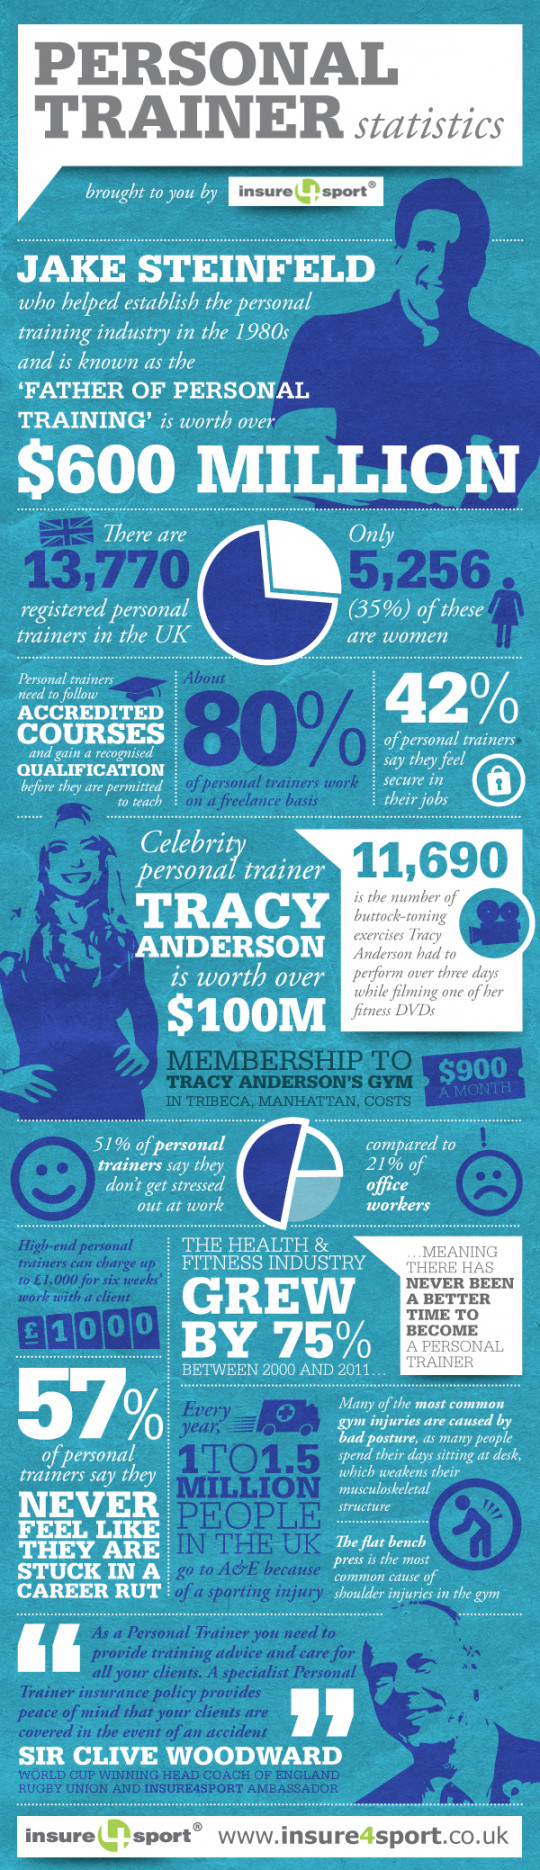 Personal Trainer Facts and Stats